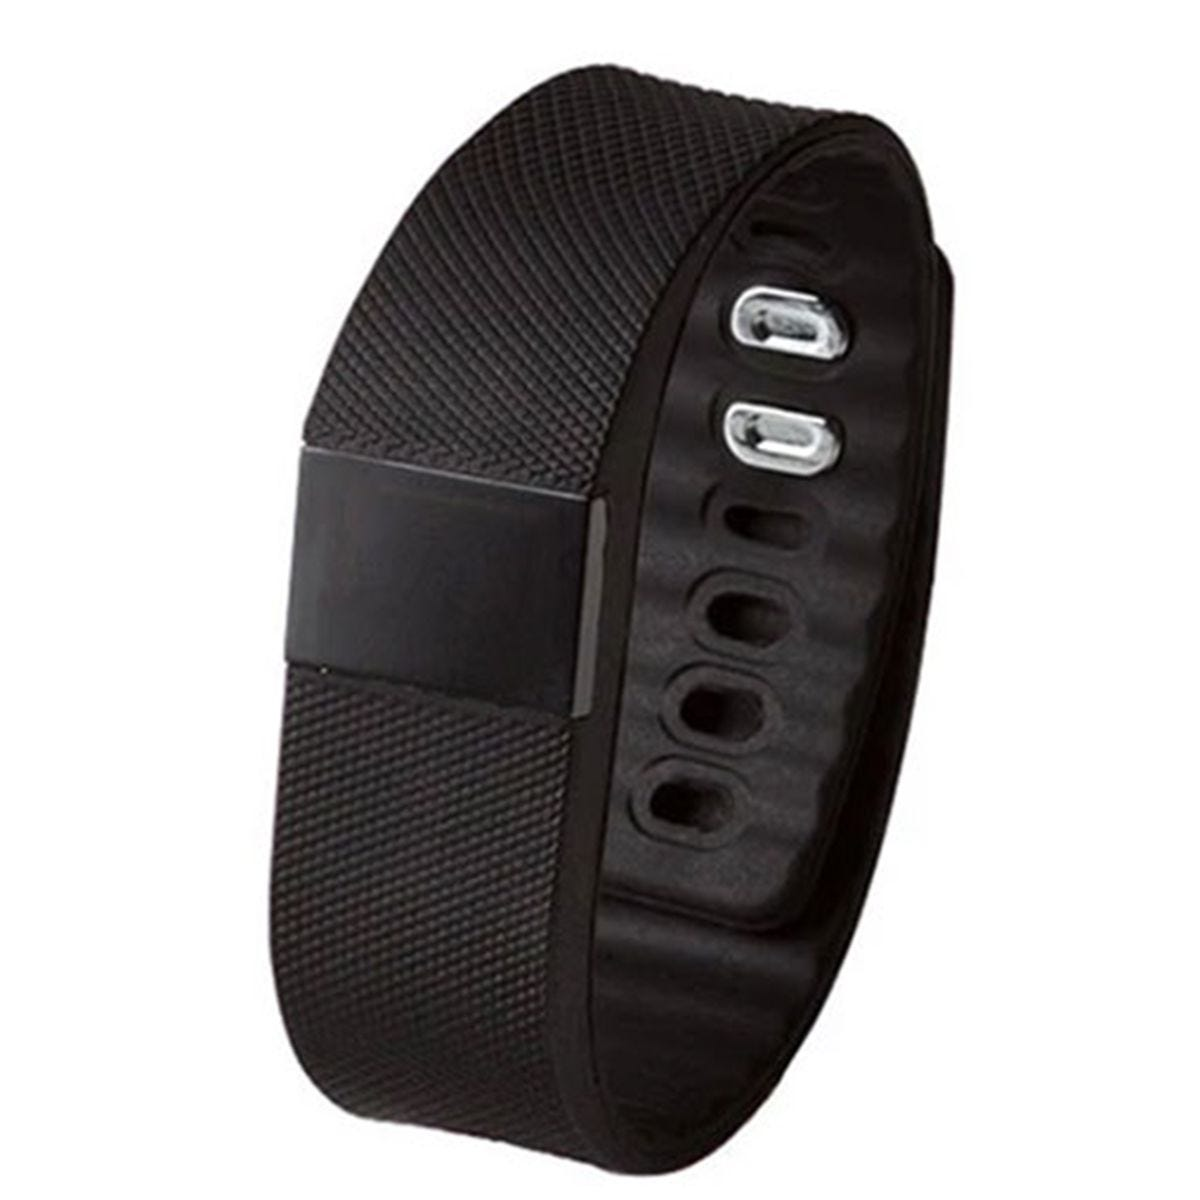 Aquarius Bluetooth Fitness Tracker (Sports Wristband) AQSPWB - Black